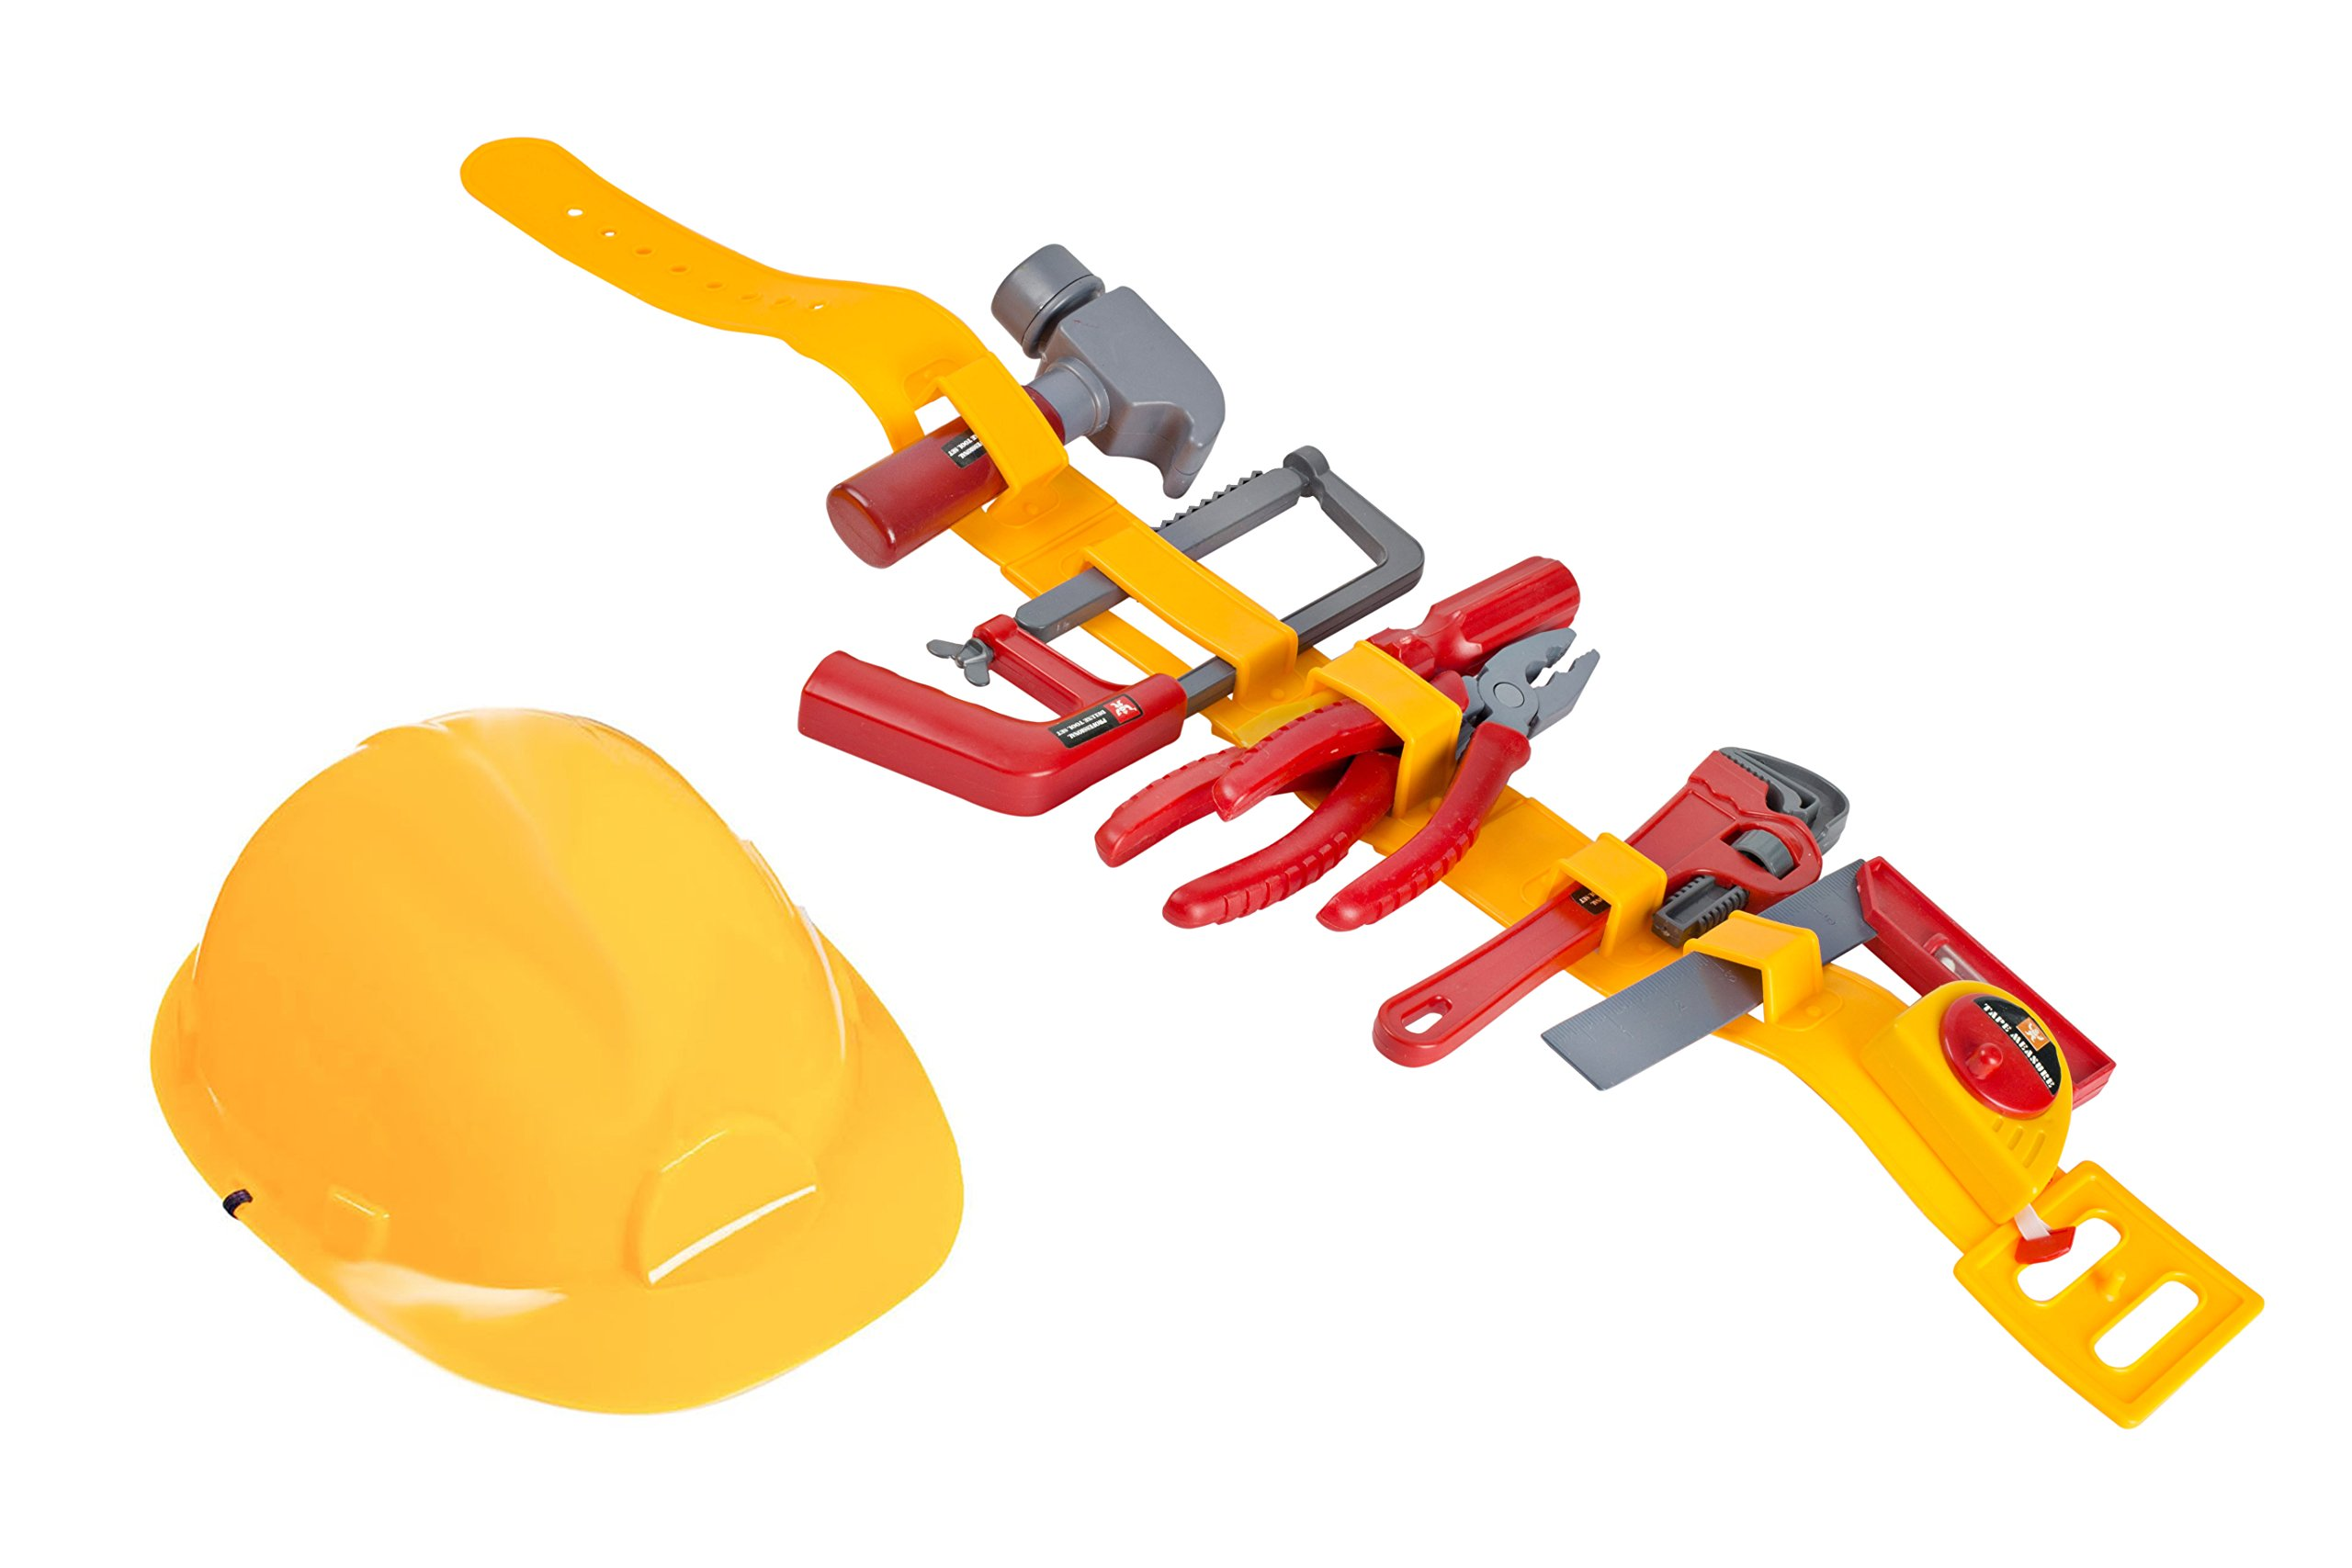 Kids Tool Toy - Pretend Play Childrens Tool Belt Set with Hard Hat, Tape Measure and Toy Hand Tools by Big Mo's Toys